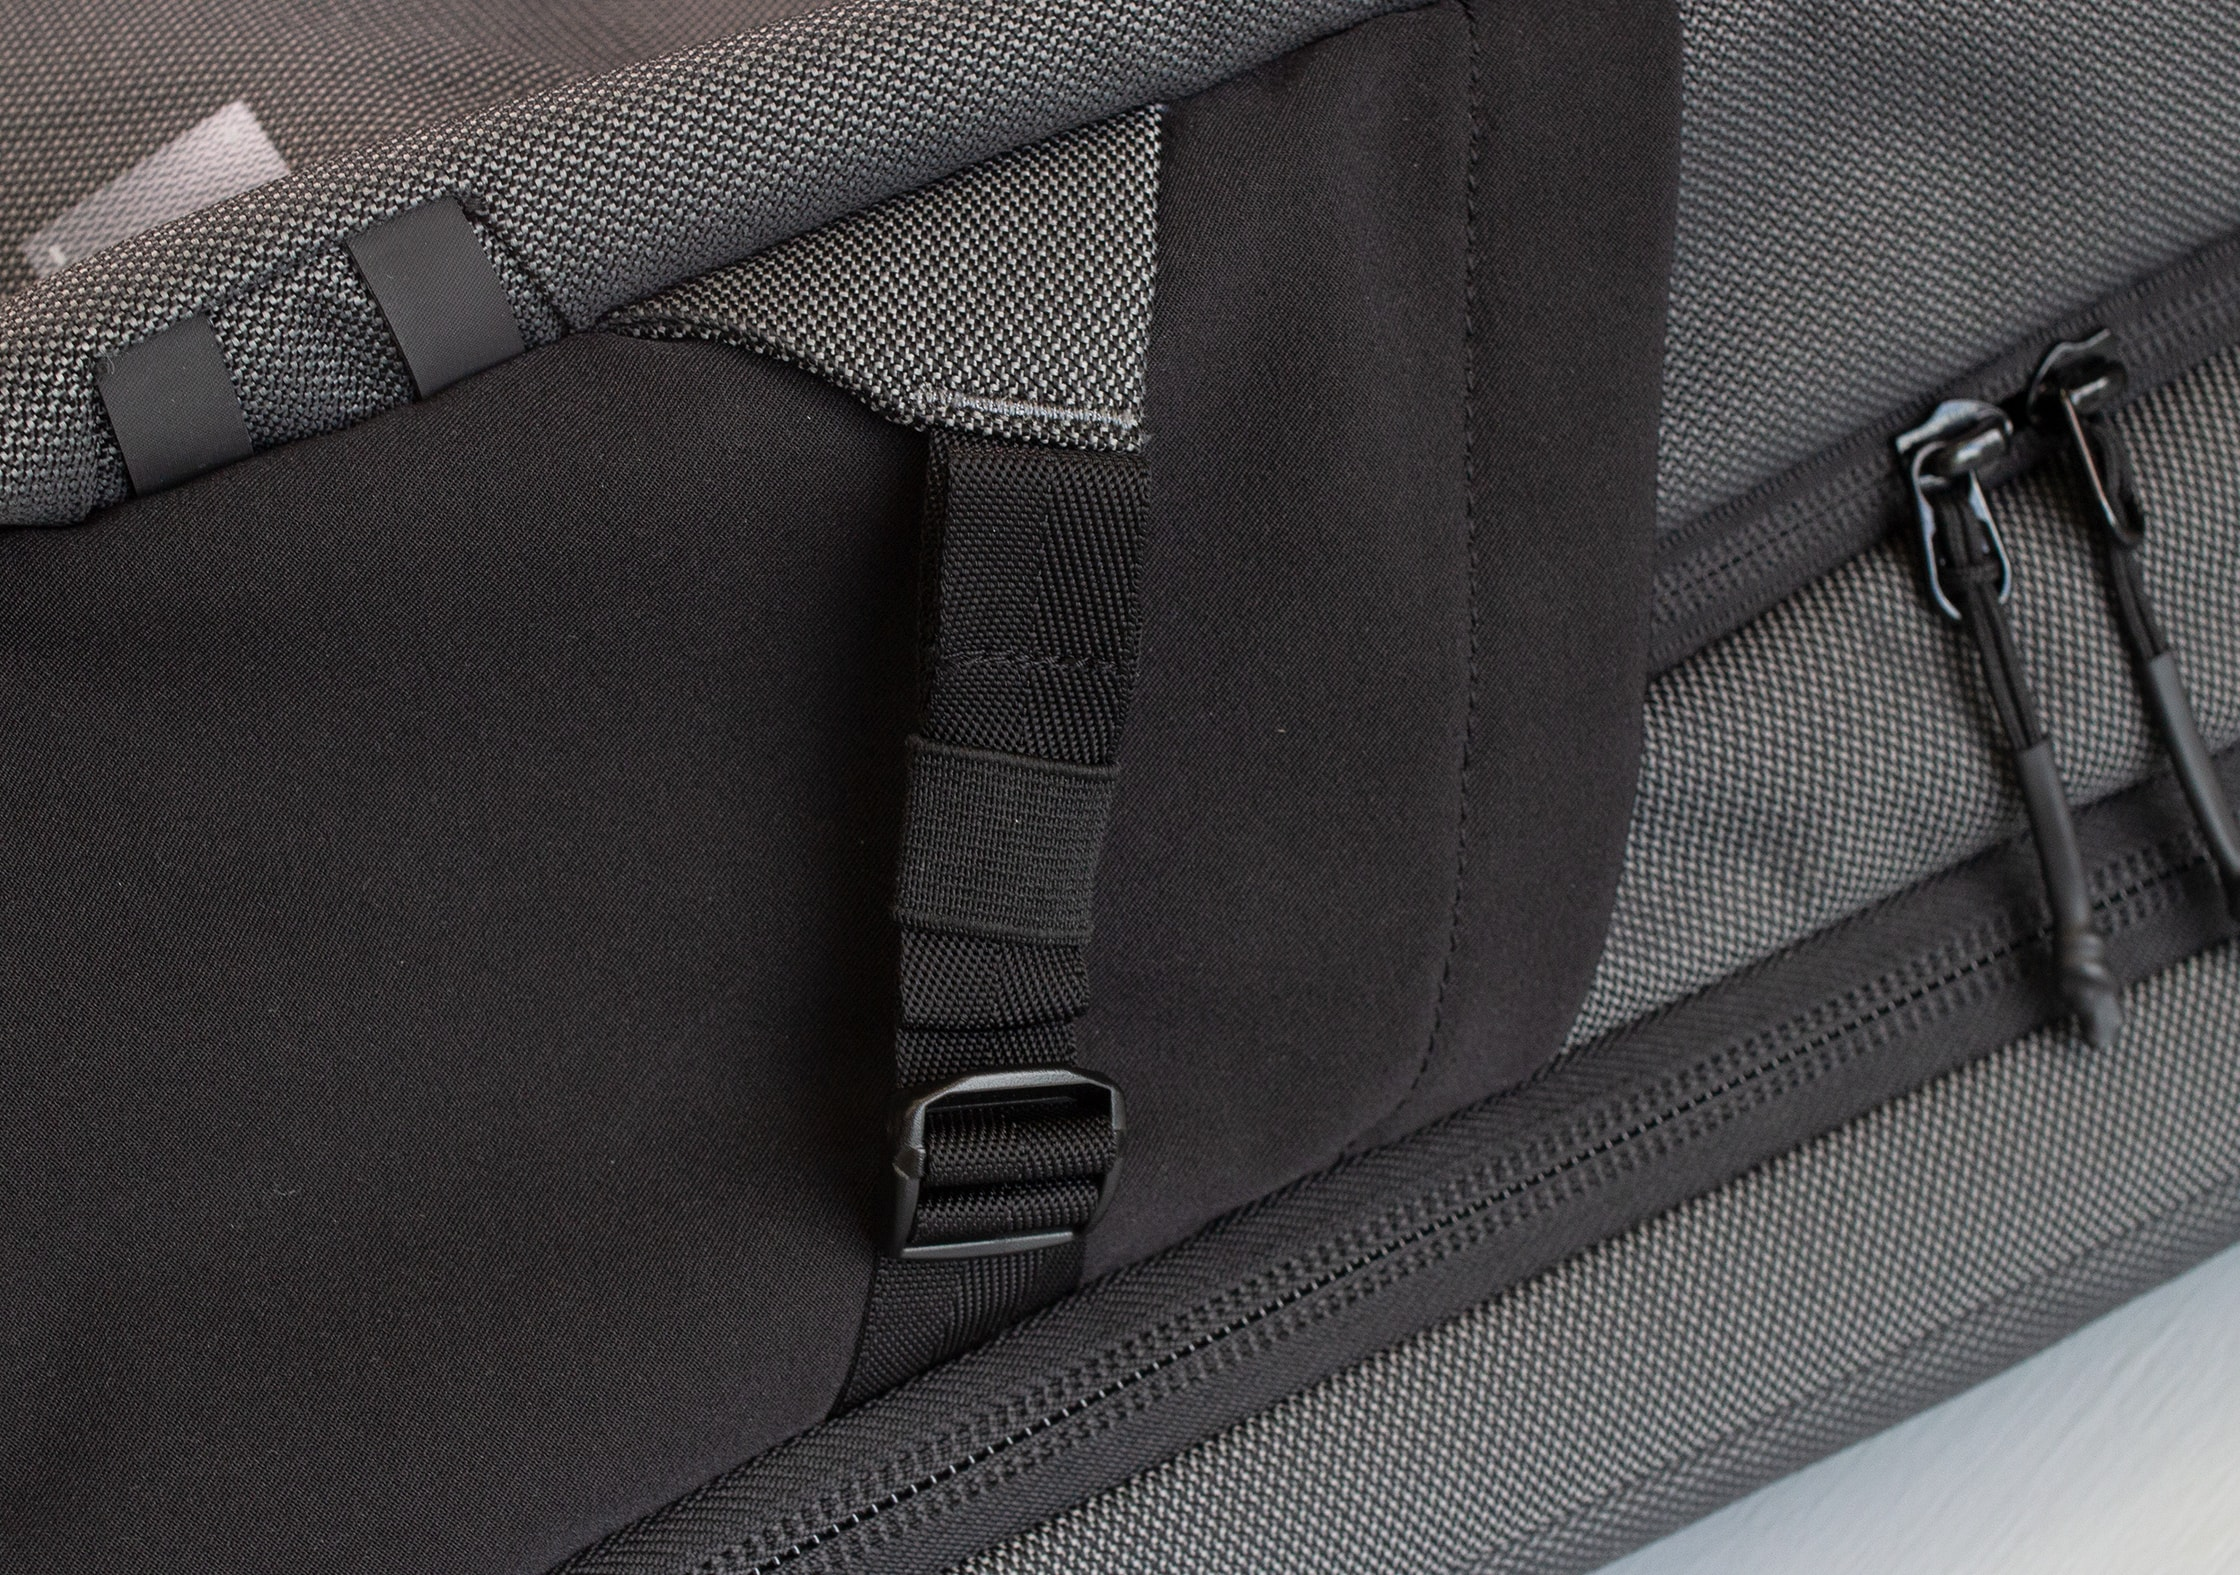 Heimplanet Transit Line Travel Pack Compression Straps